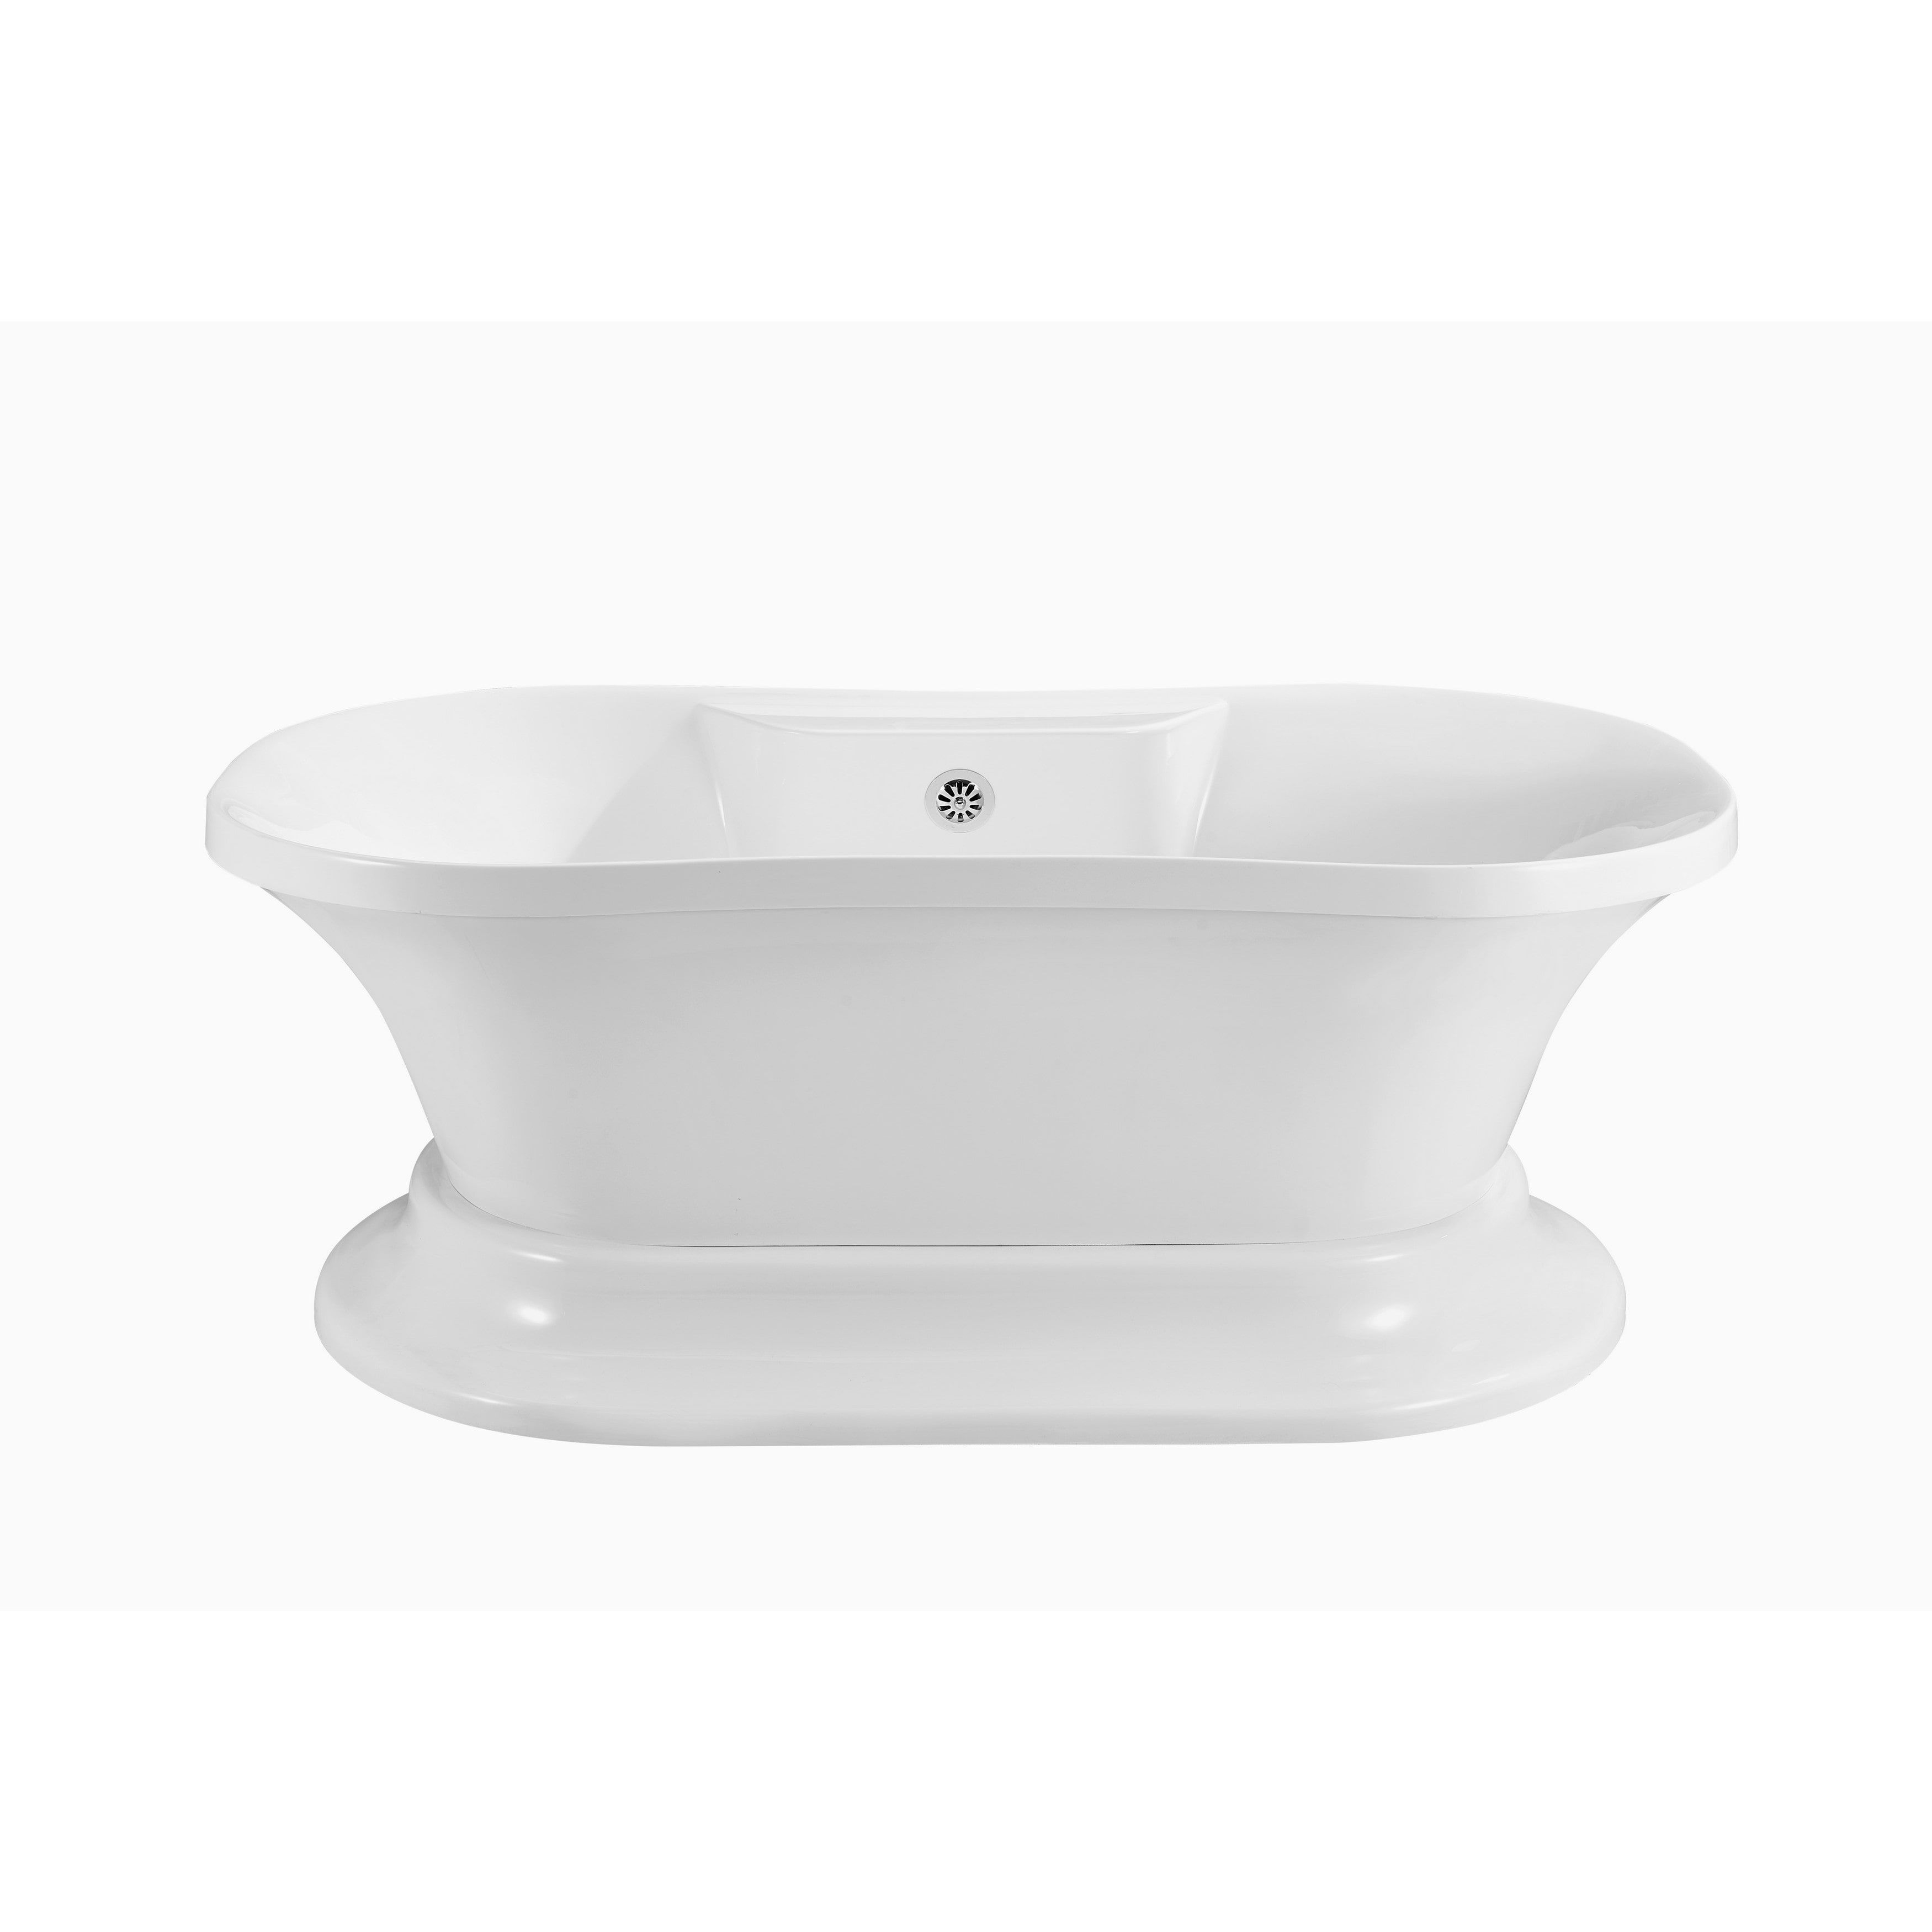 60 Streamline N180ch Soaking Freestanding Tub And Tray With